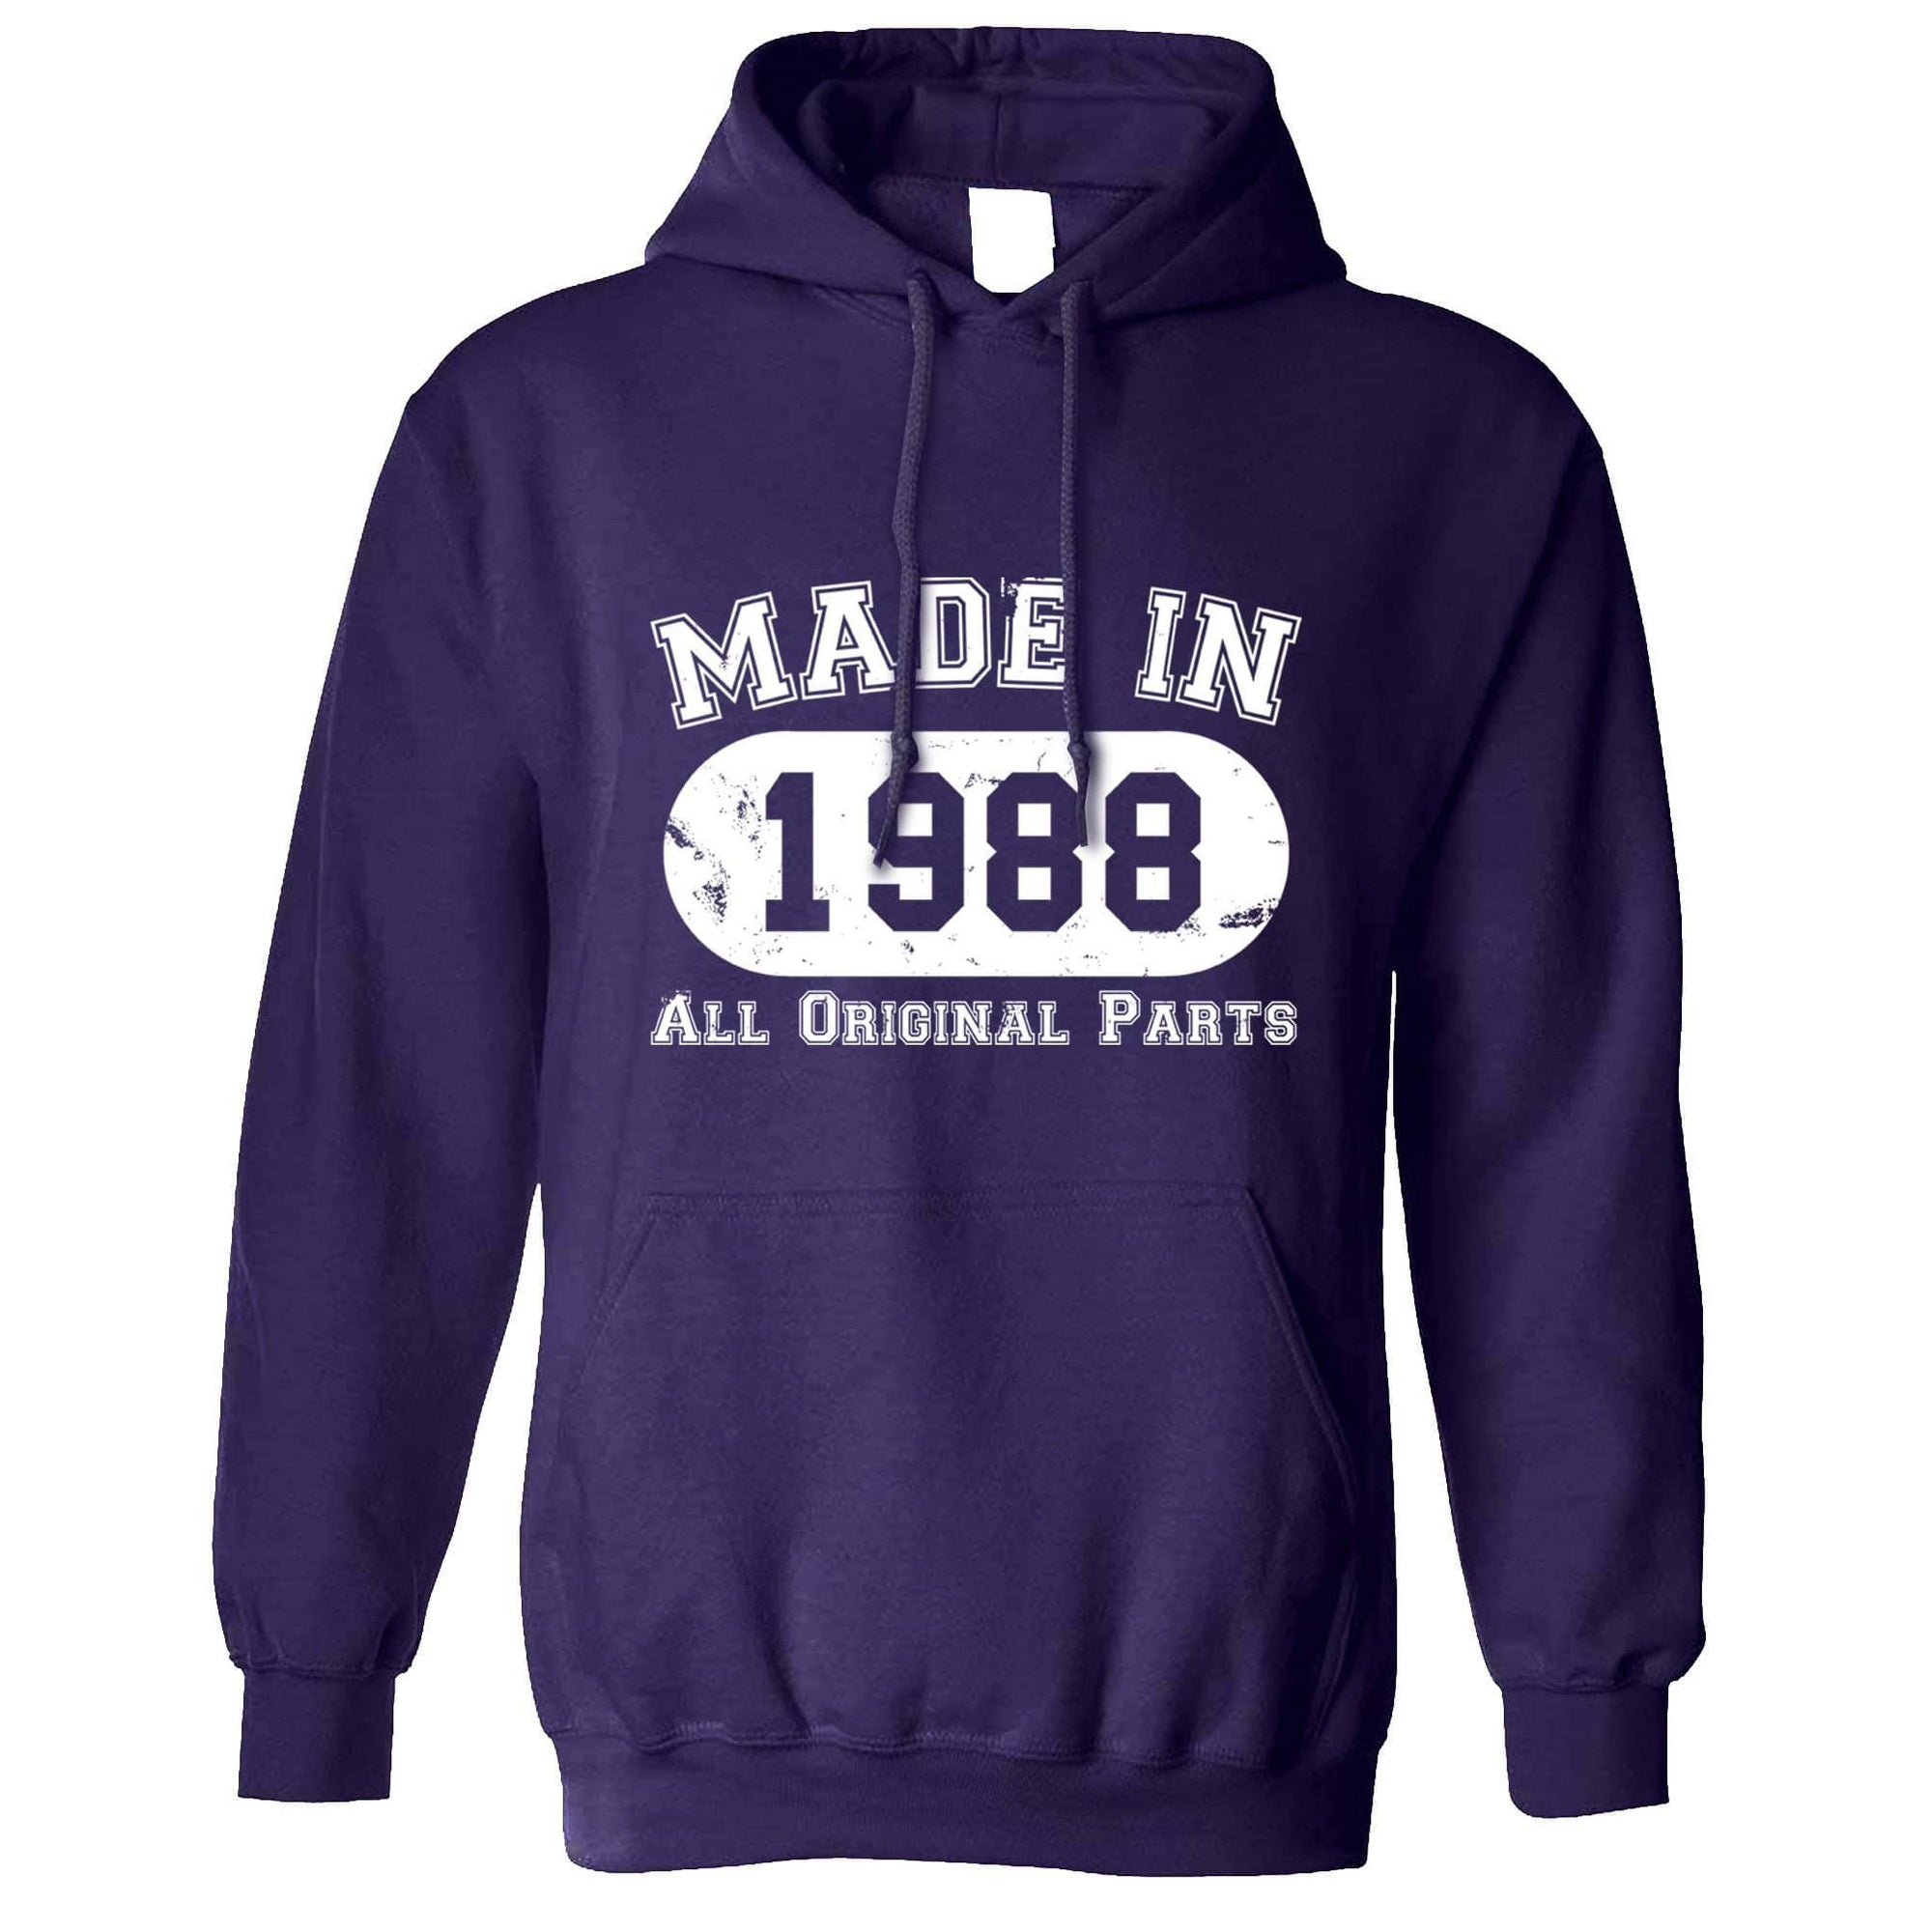 Made in 1988 All Original Parts Hoodie [Distressed]